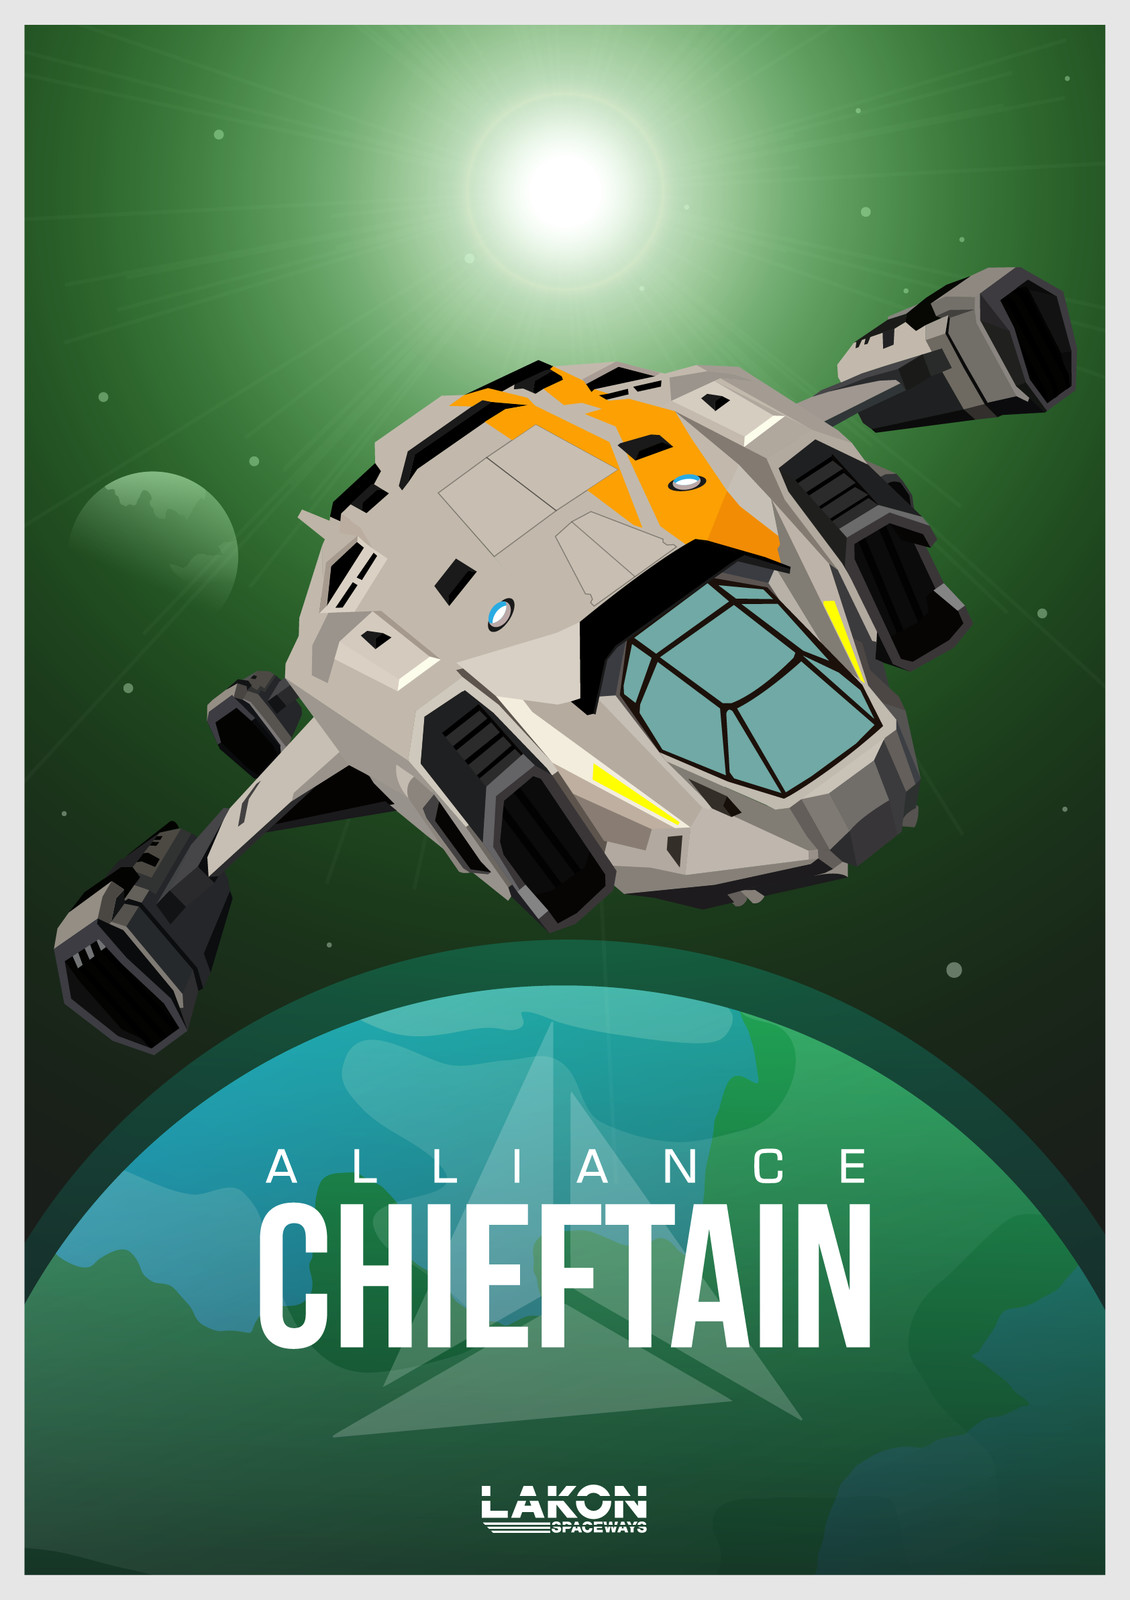 The Alliance Chieftain